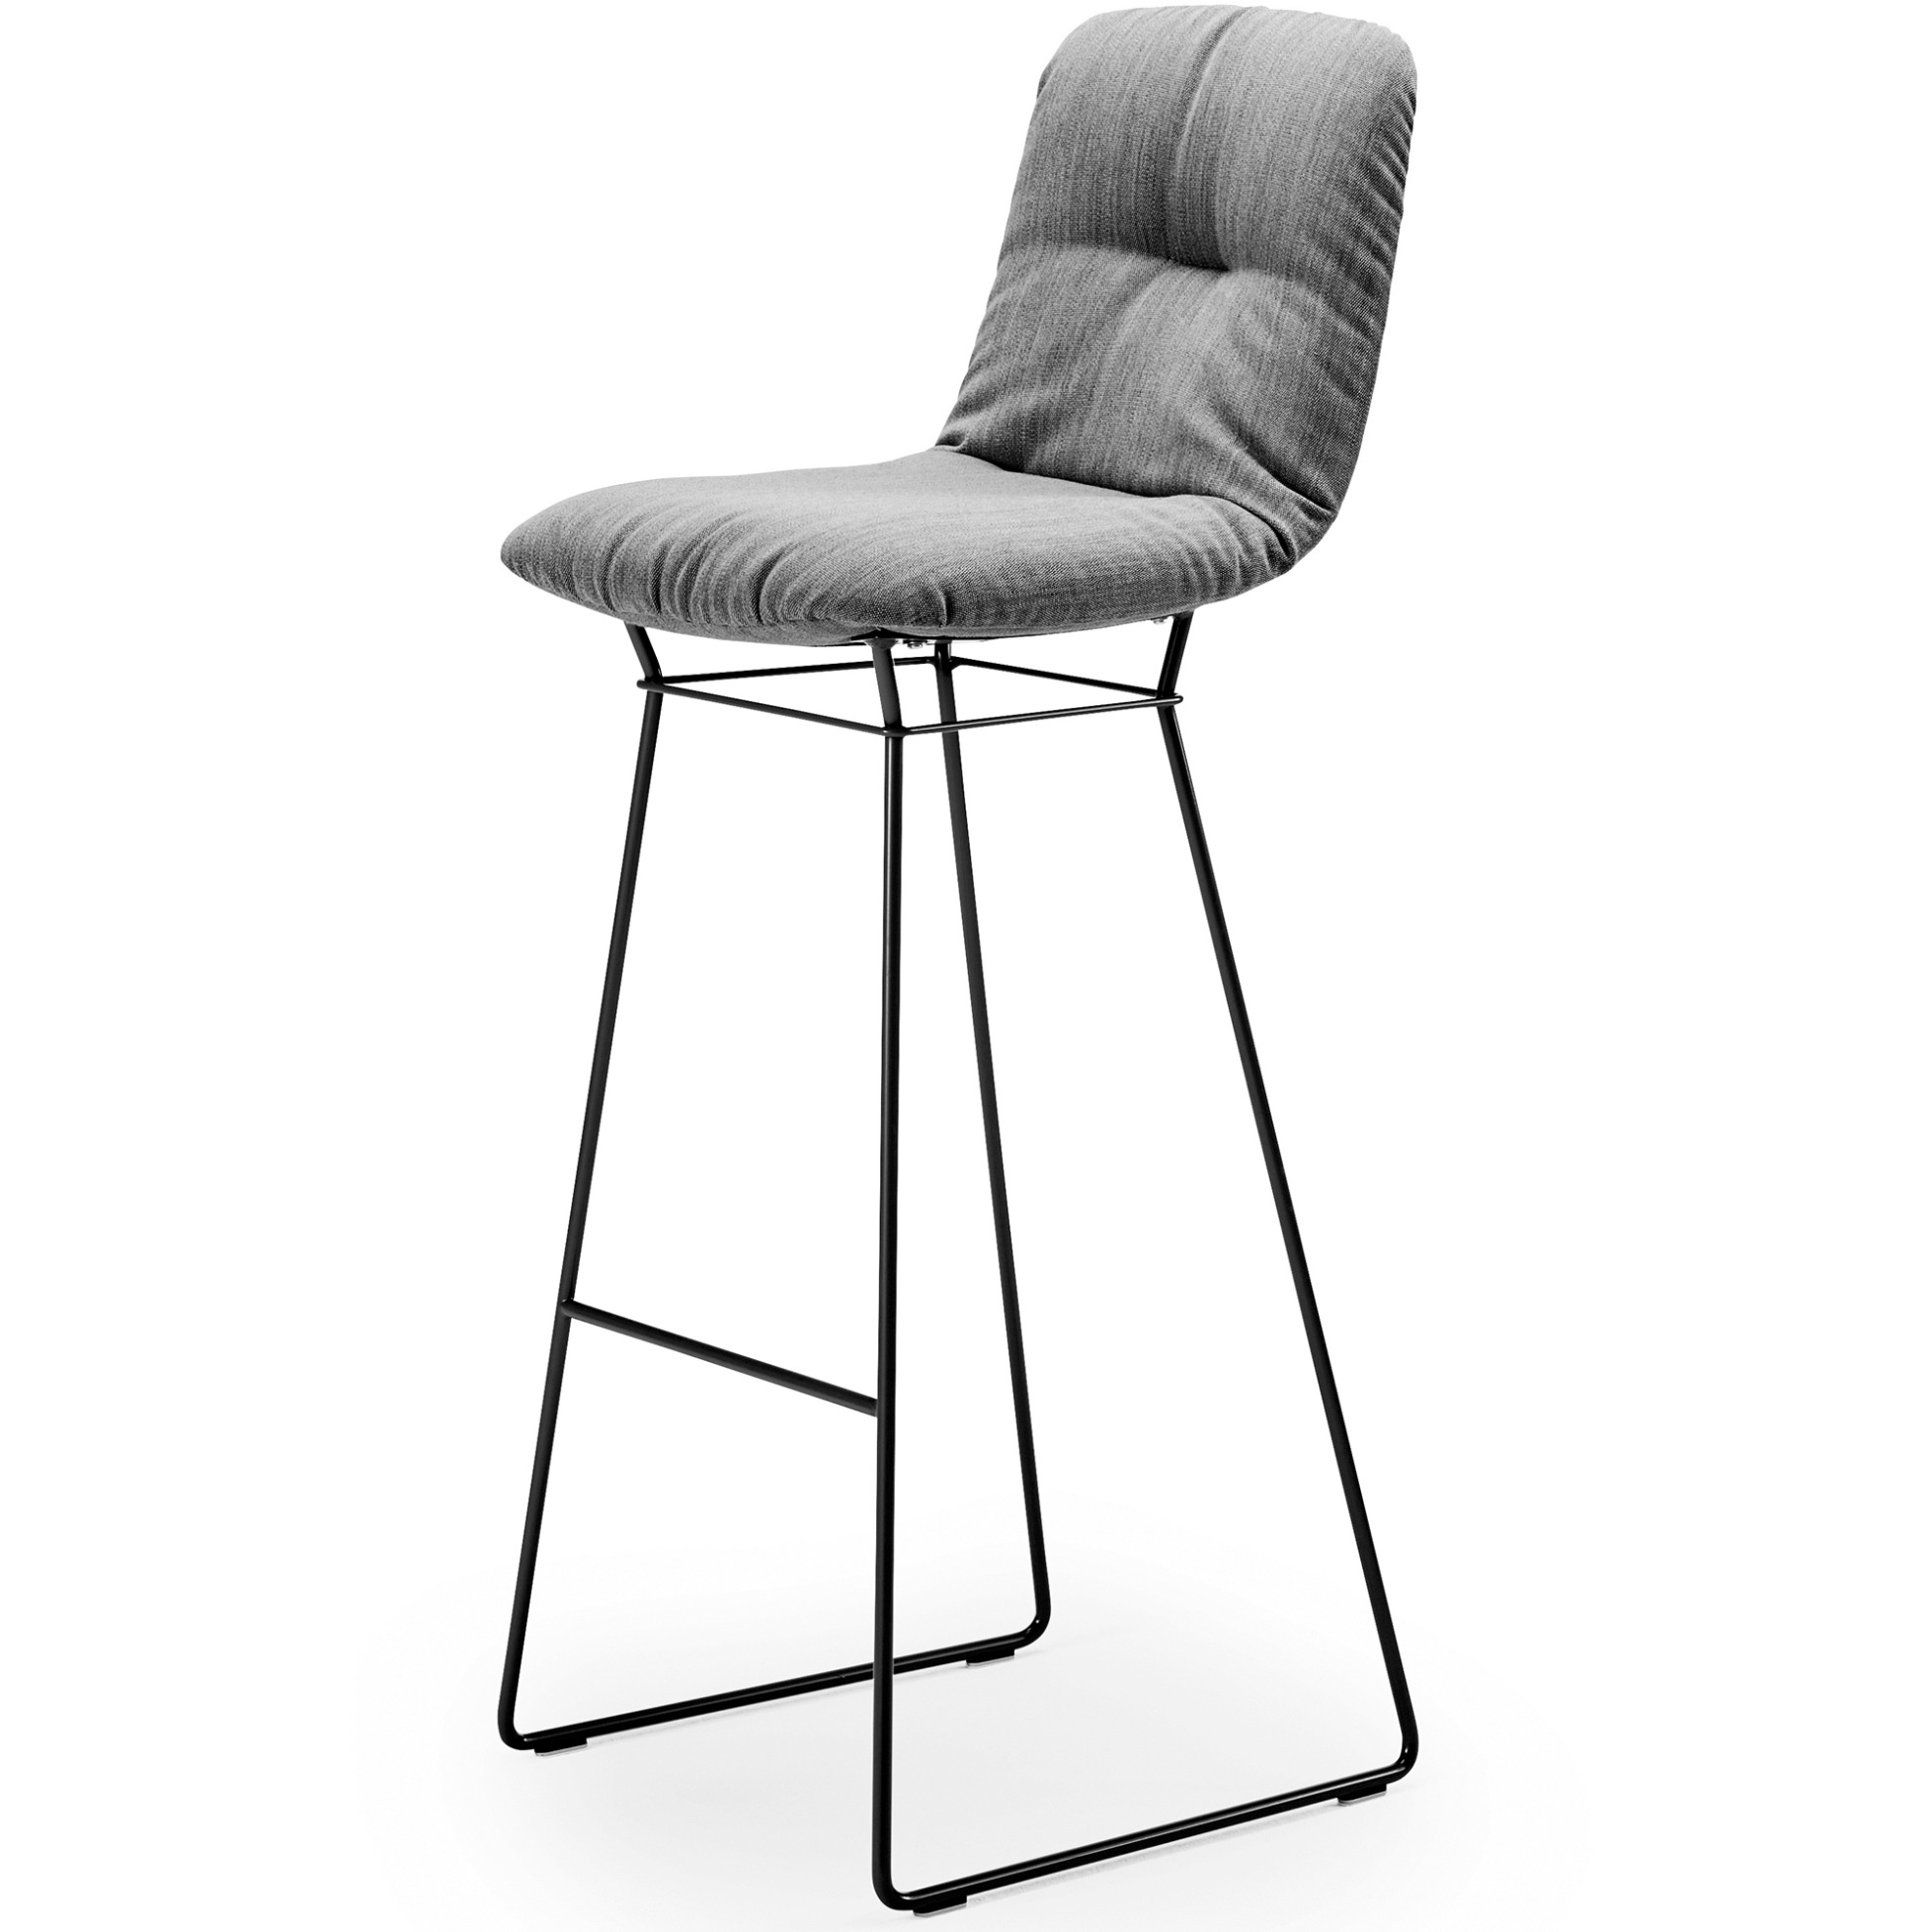 Freifrau Sessel Leya Barstool Leya By Freifrau With High Backrest